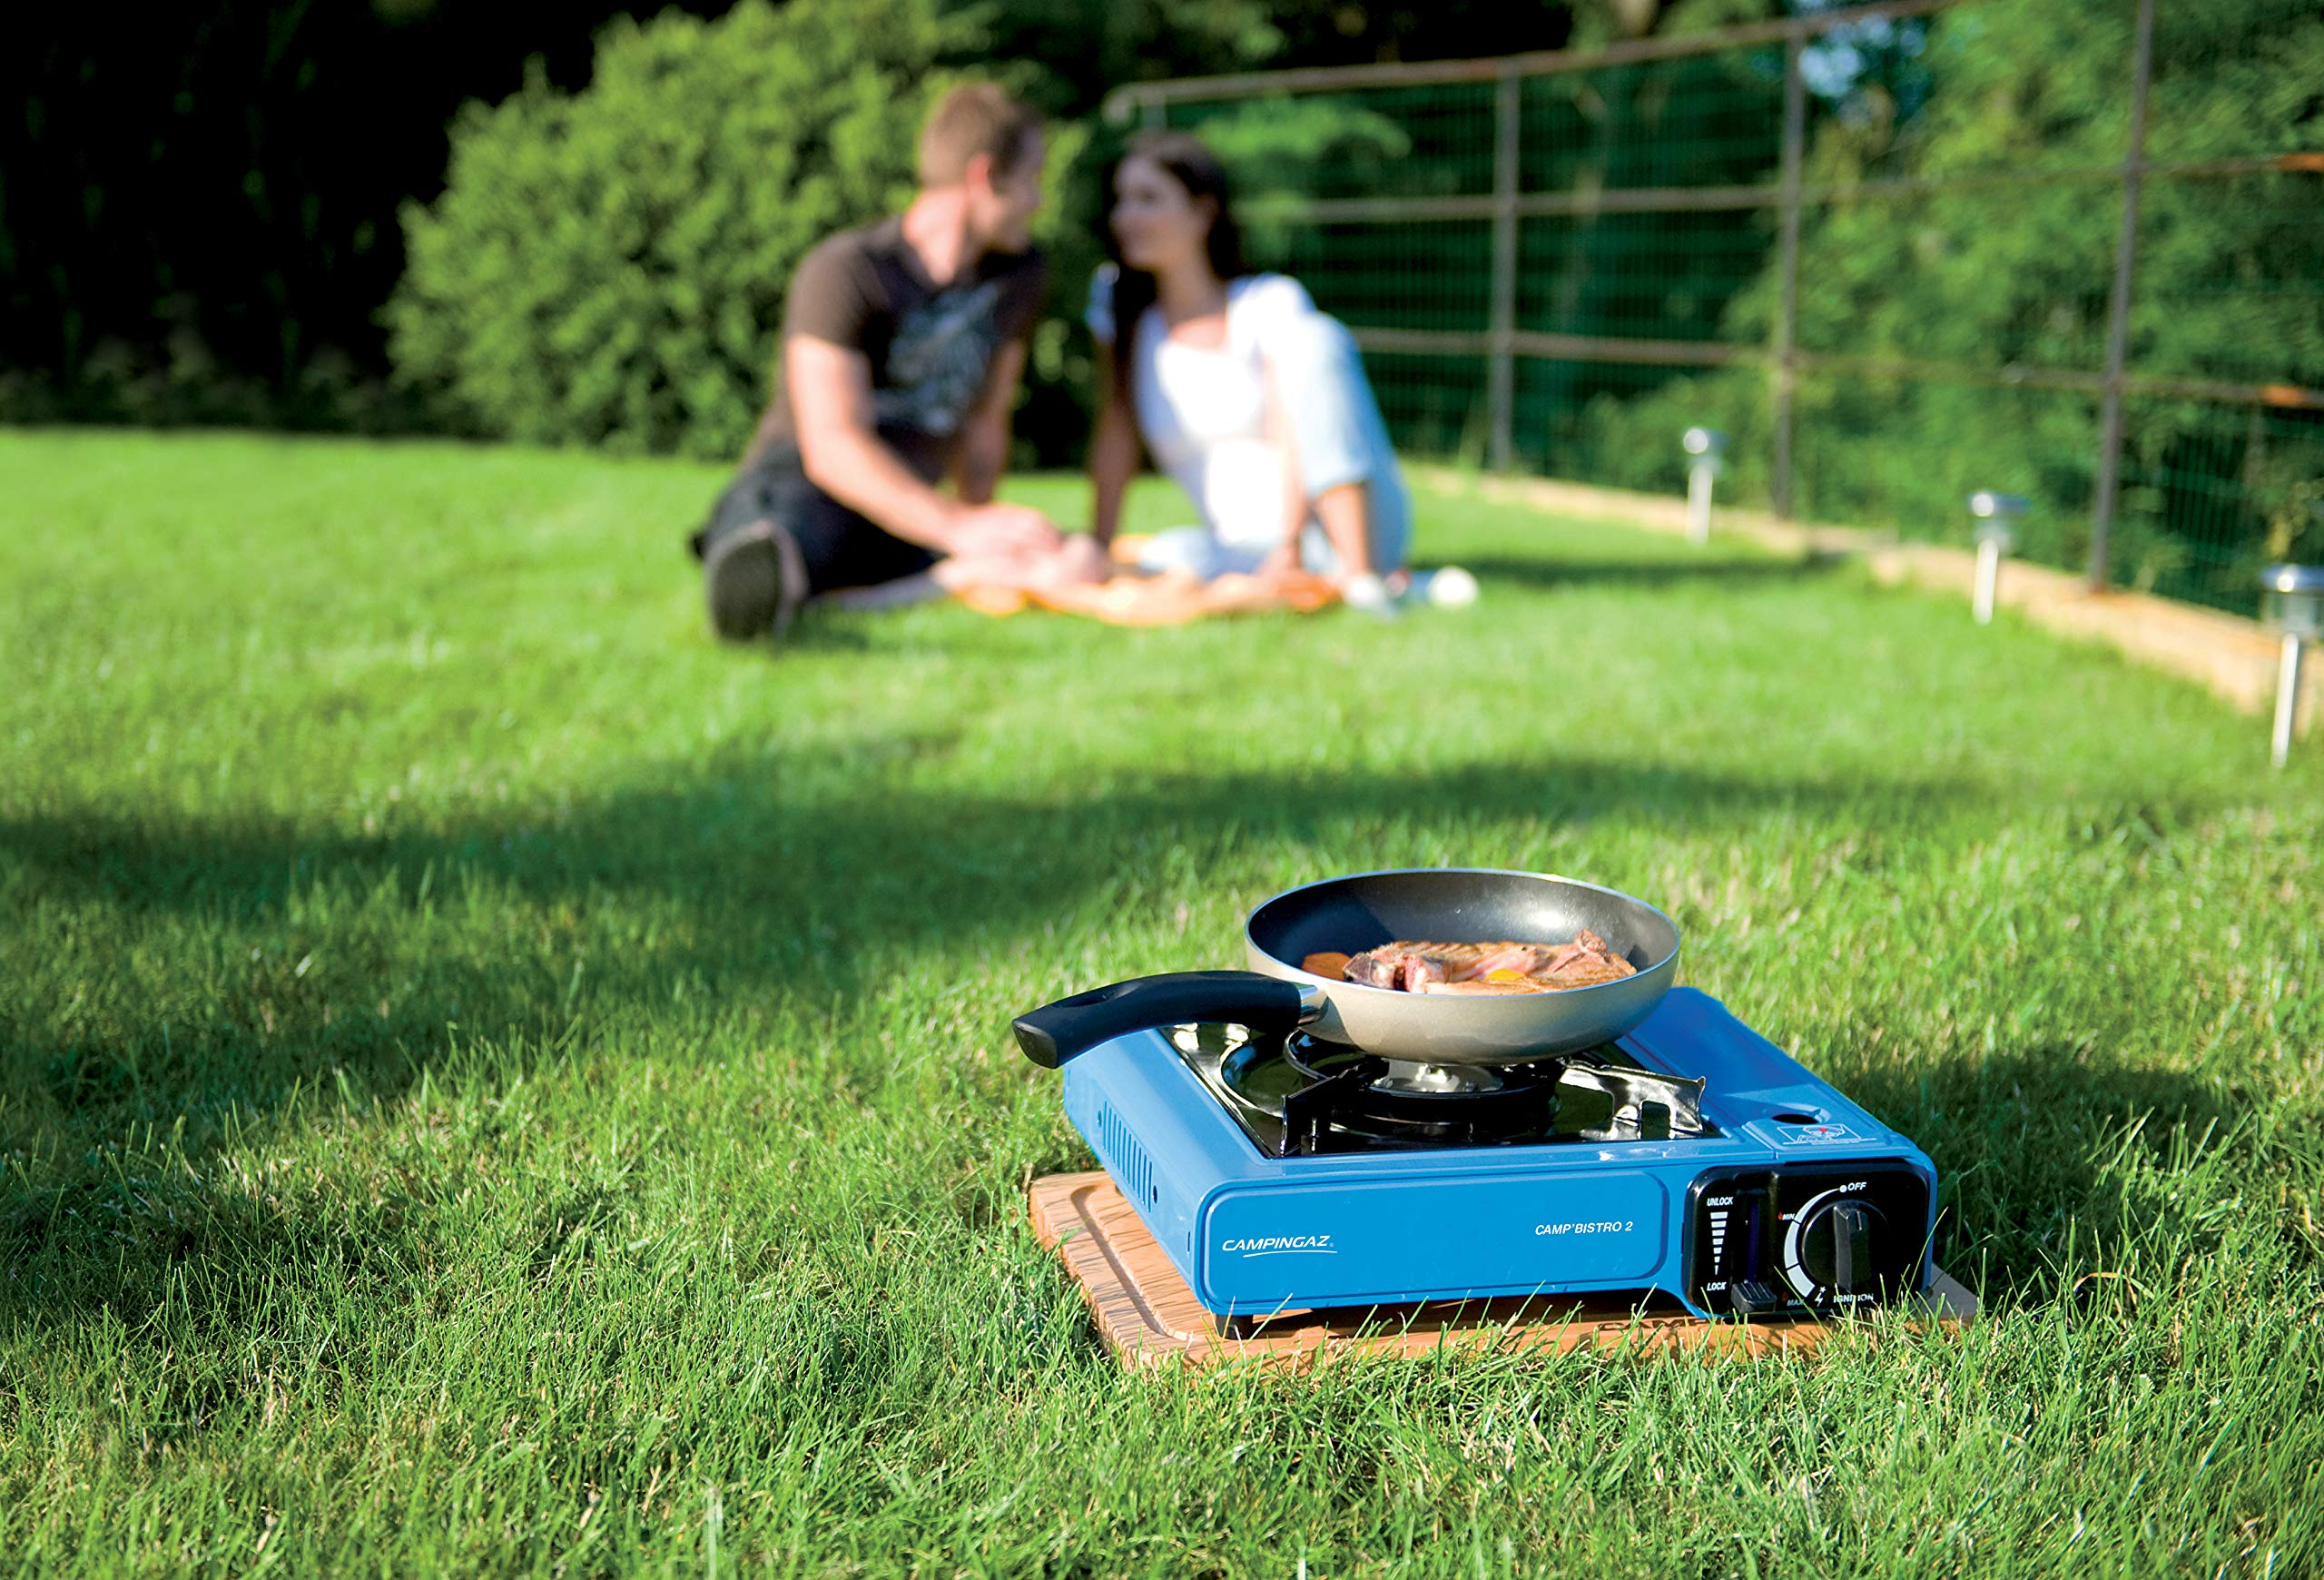 Campingaz Camp Bistro 2, Camping Stove, Portable Gas Cooker for Camping or Festivals, Easy Handling 2